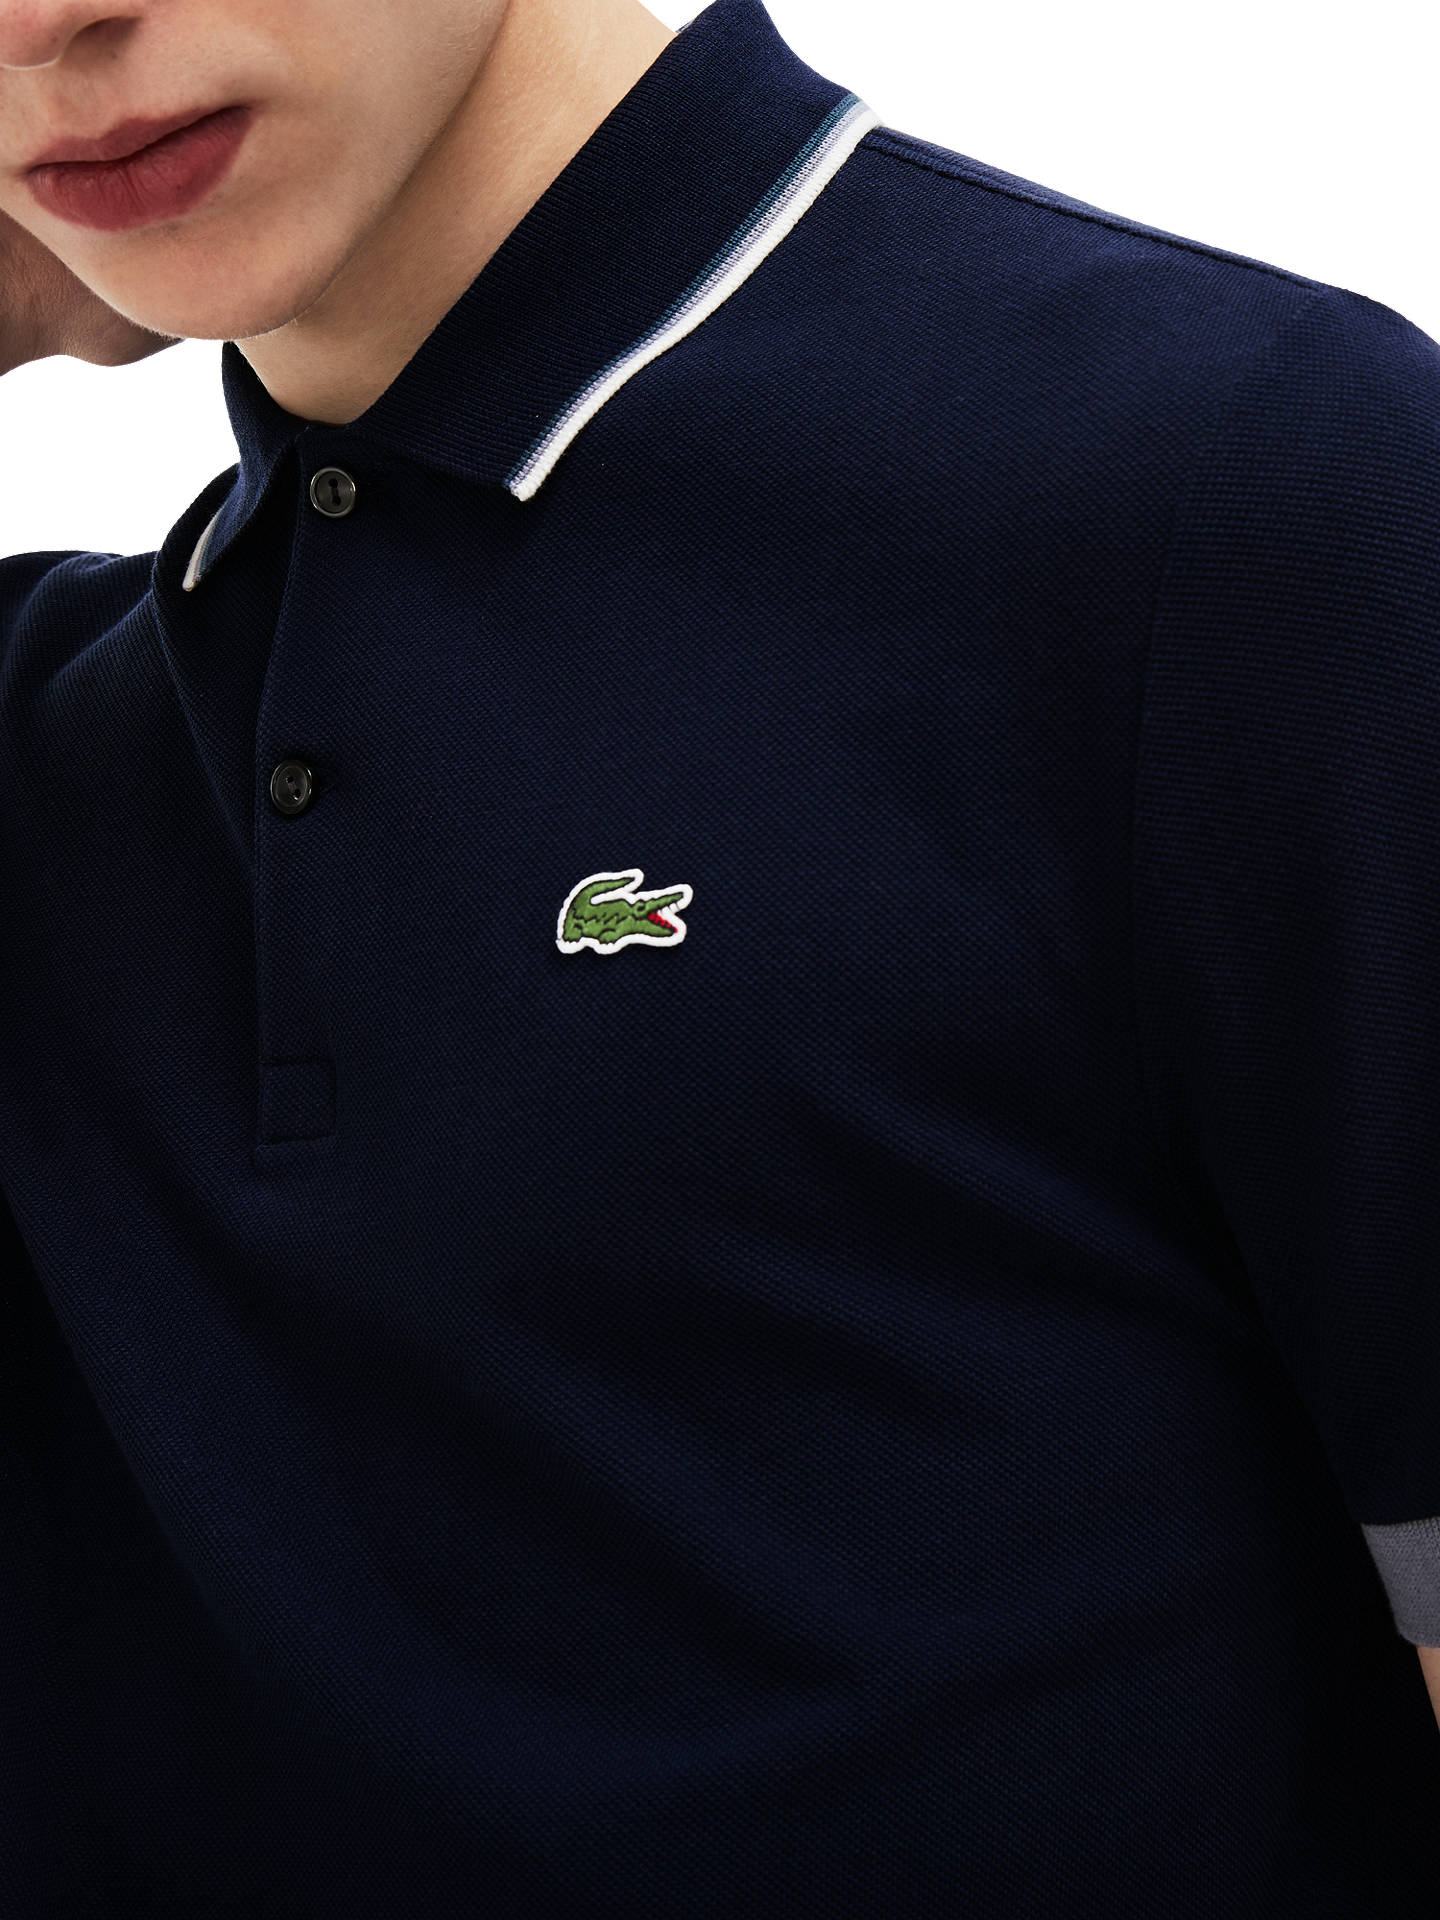 bd5f712010cb20 Lacoste Shirt For Sale Malaysia